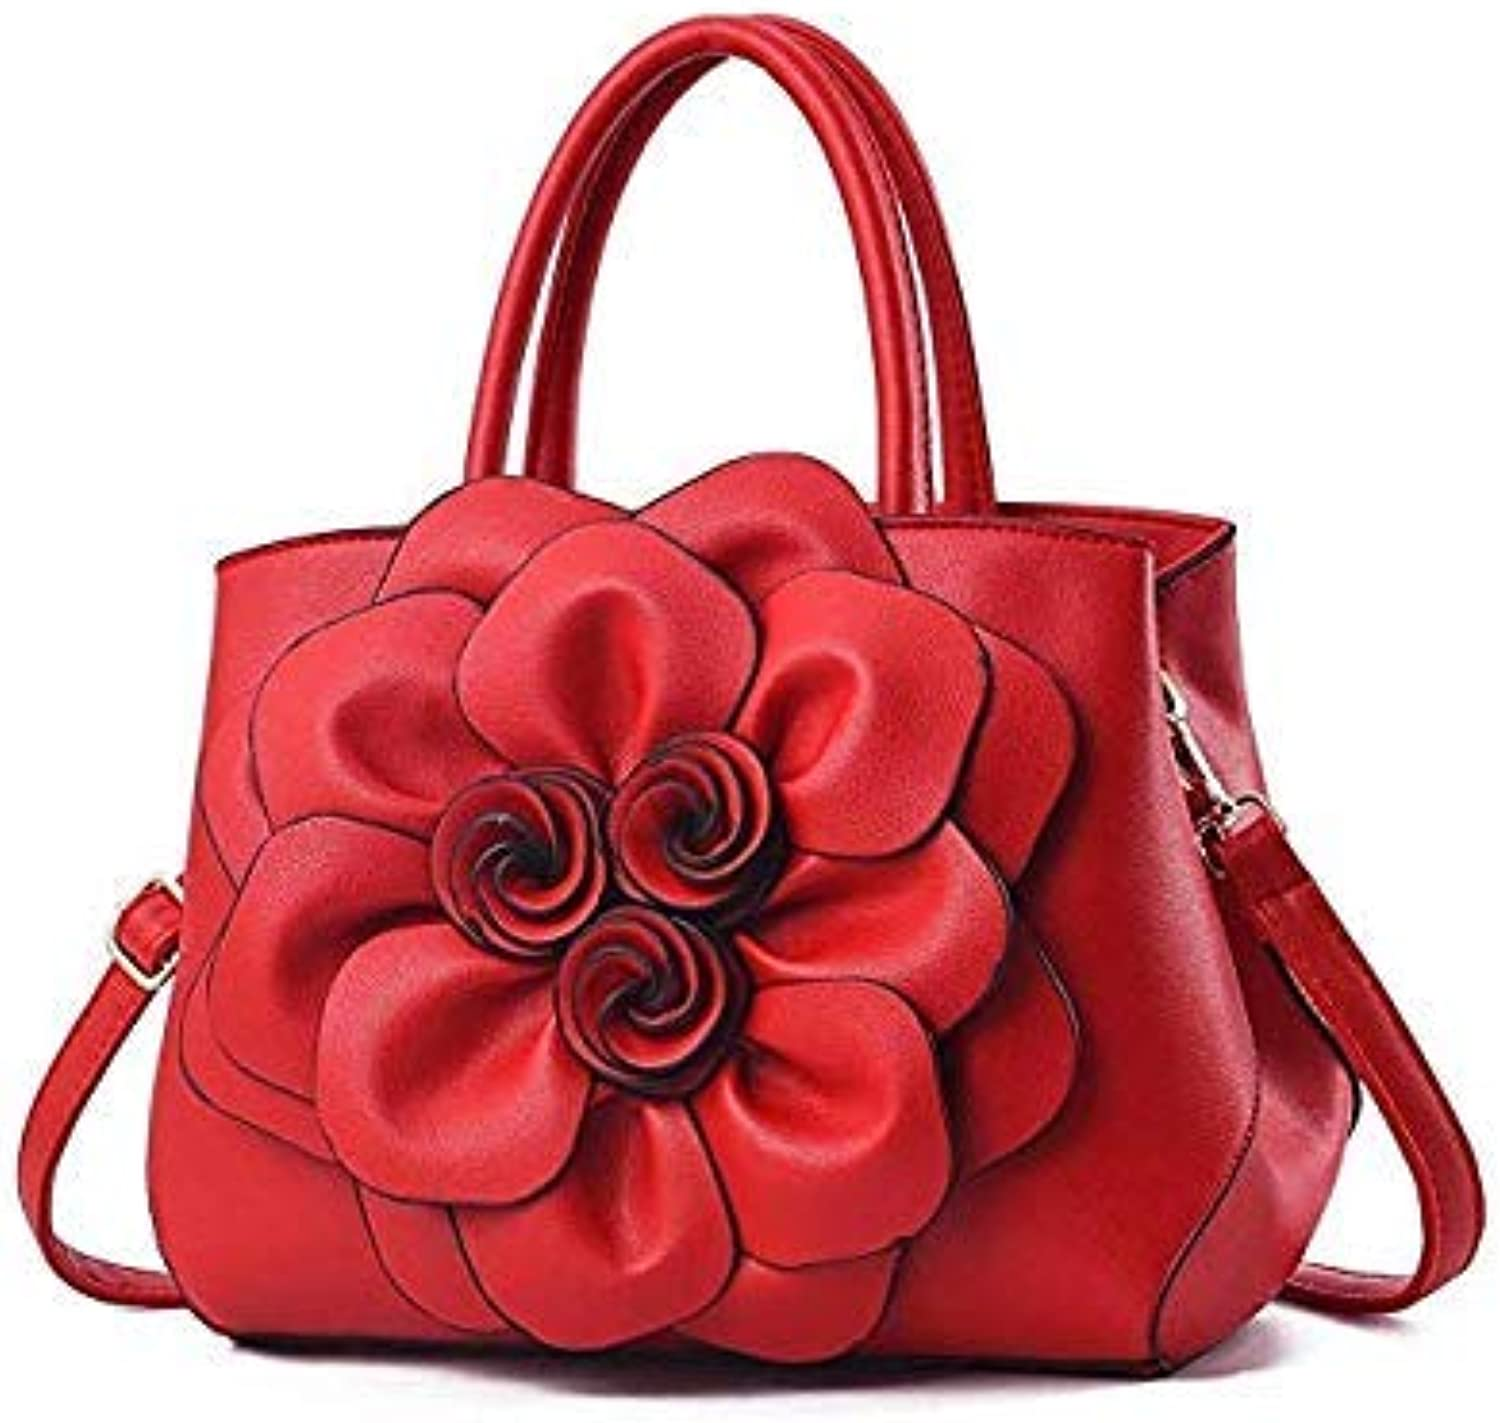 Bloomerang Gykaeo Luxury Handbags Women Bags Designer PU Leather Floral Tote Bag Ladies Casual Flower Messenger Shoulder Bags Bolsos women color Red